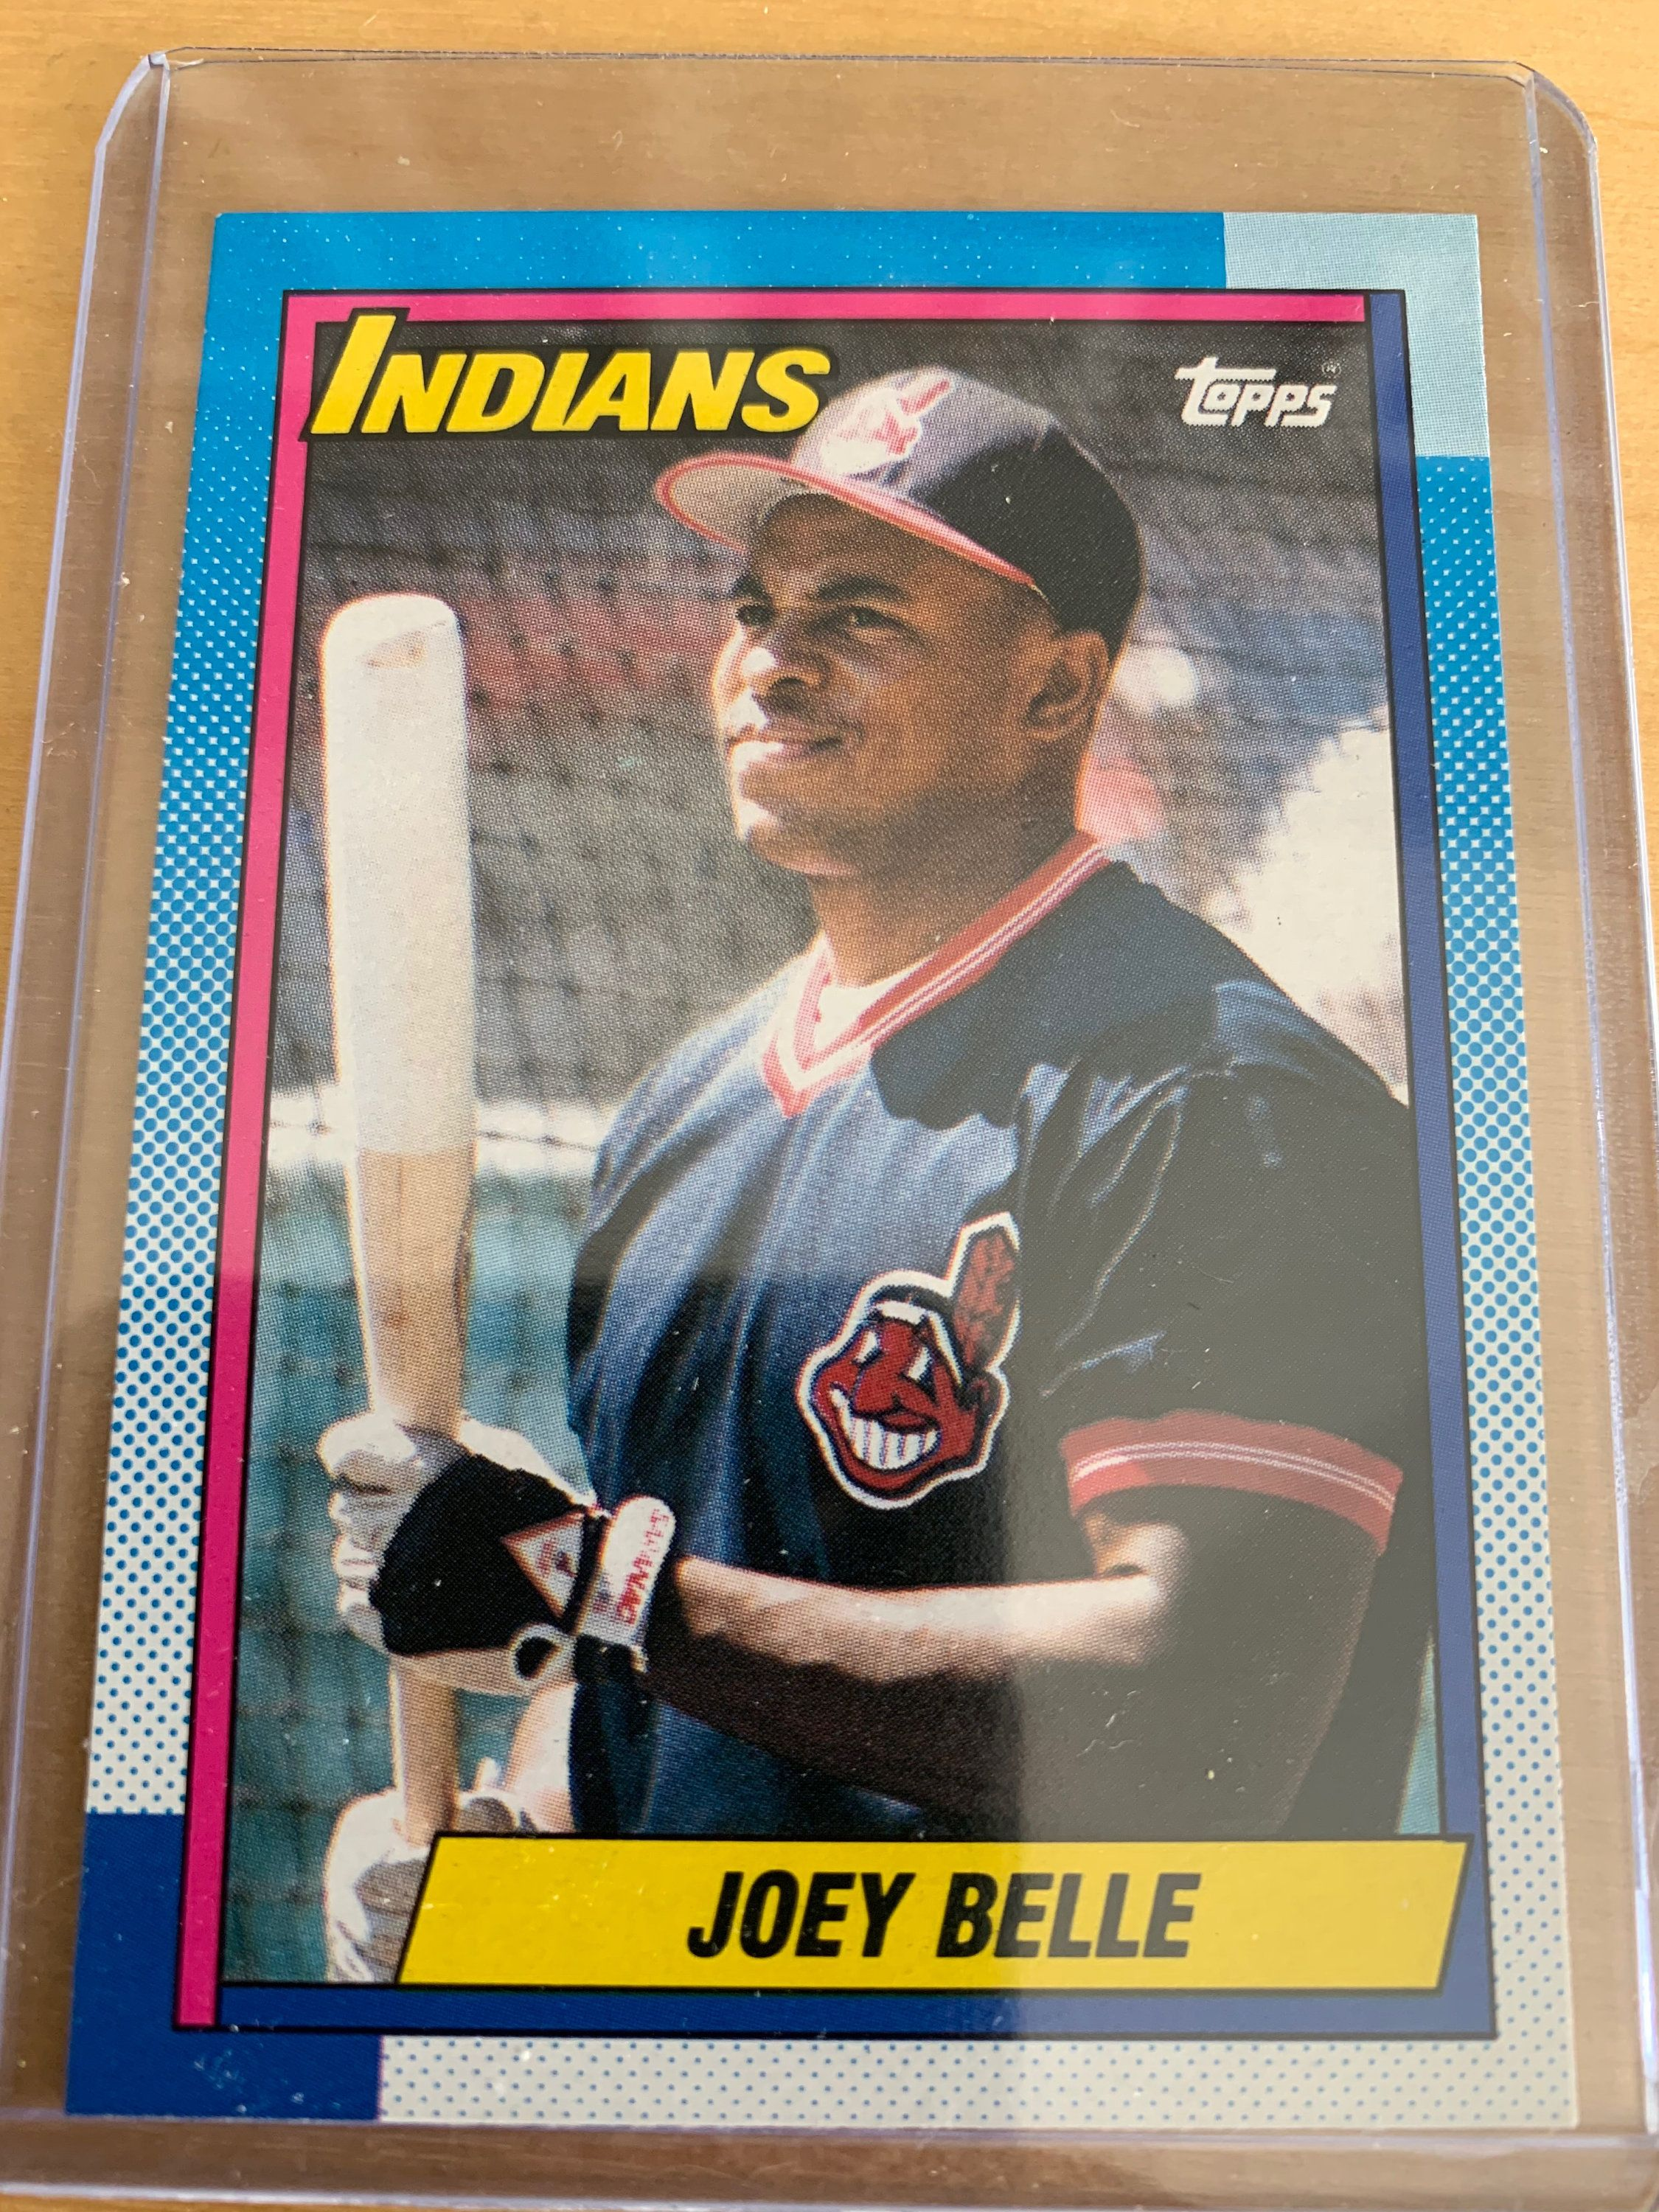 Joey belle rookie 1990 topps etsy iron maiden albums